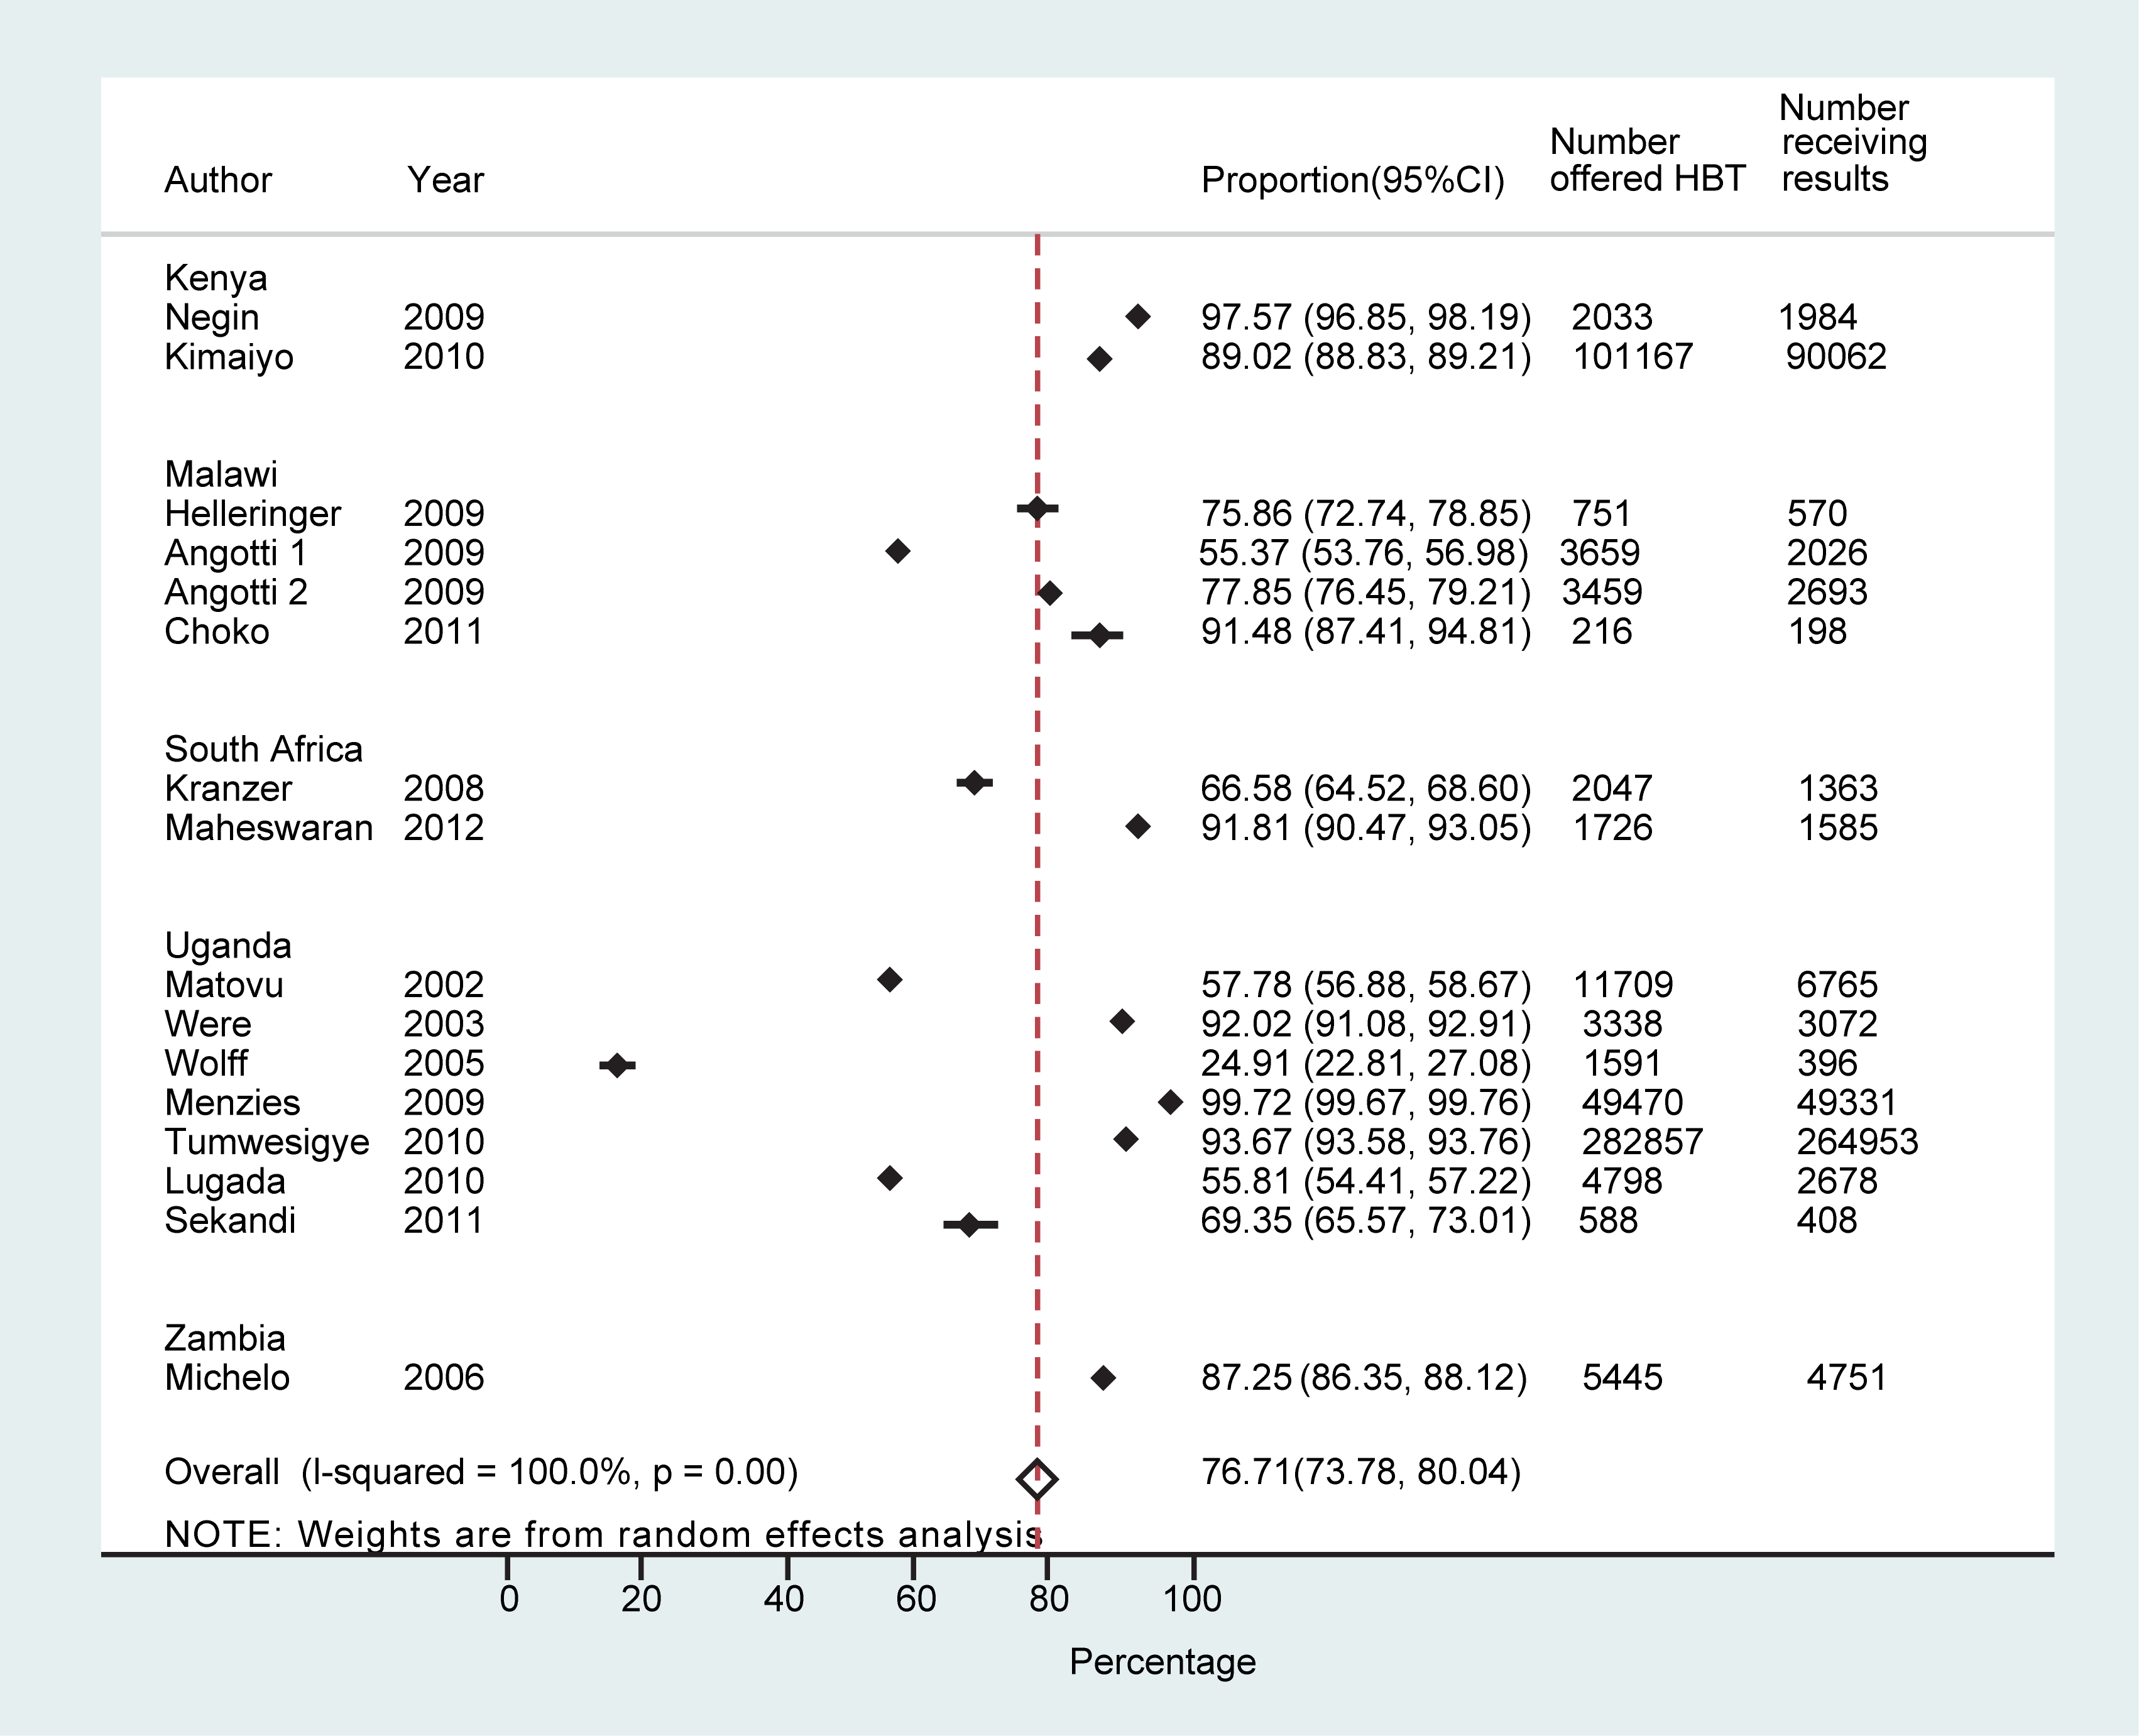 Proportion achieving knowledge of HIV status overall.